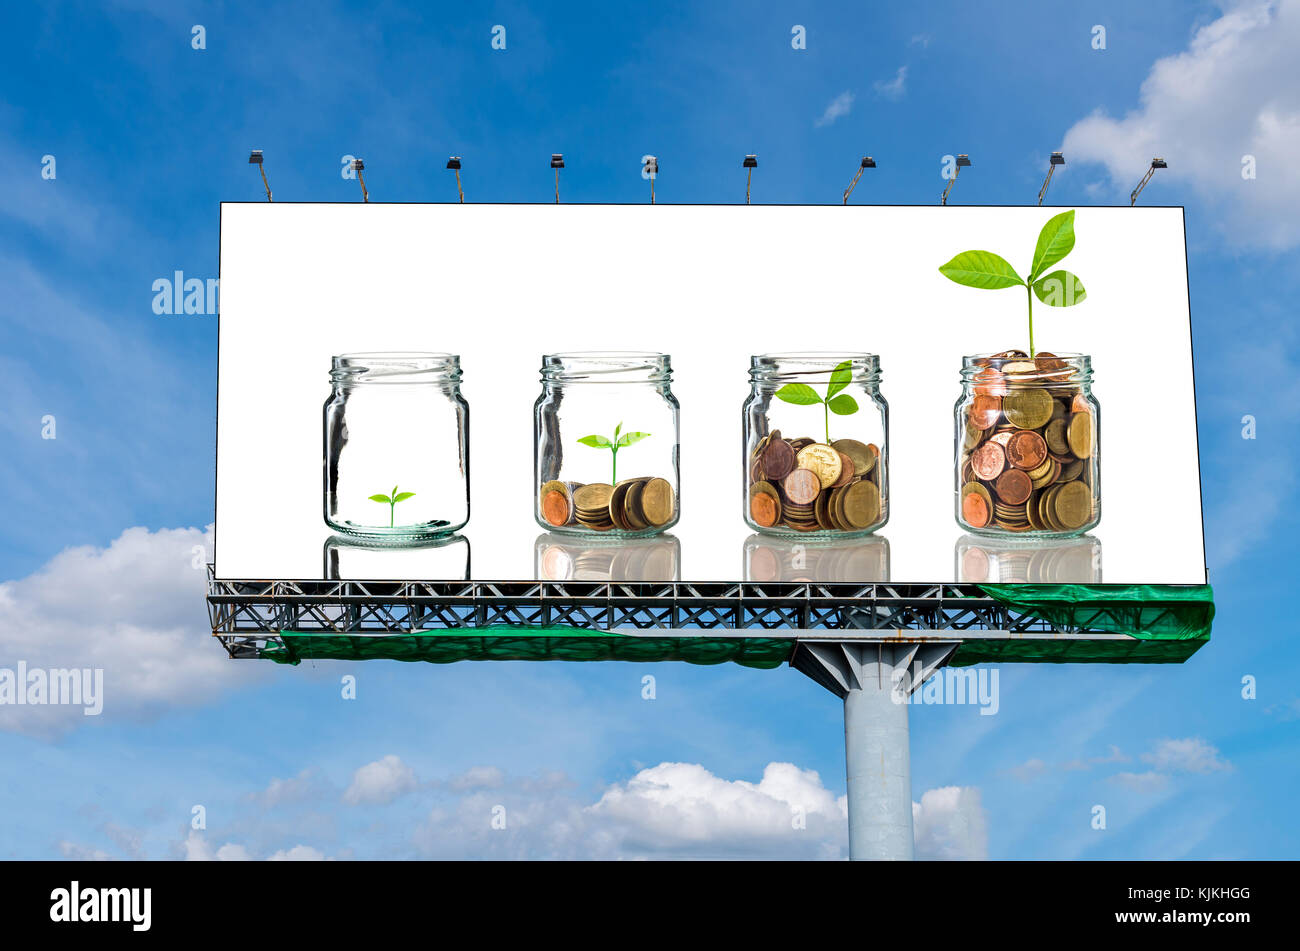 Billboard on beautiful sky showing the Gold coins and seed in clear bottle on white background,Business investment - Stock Image